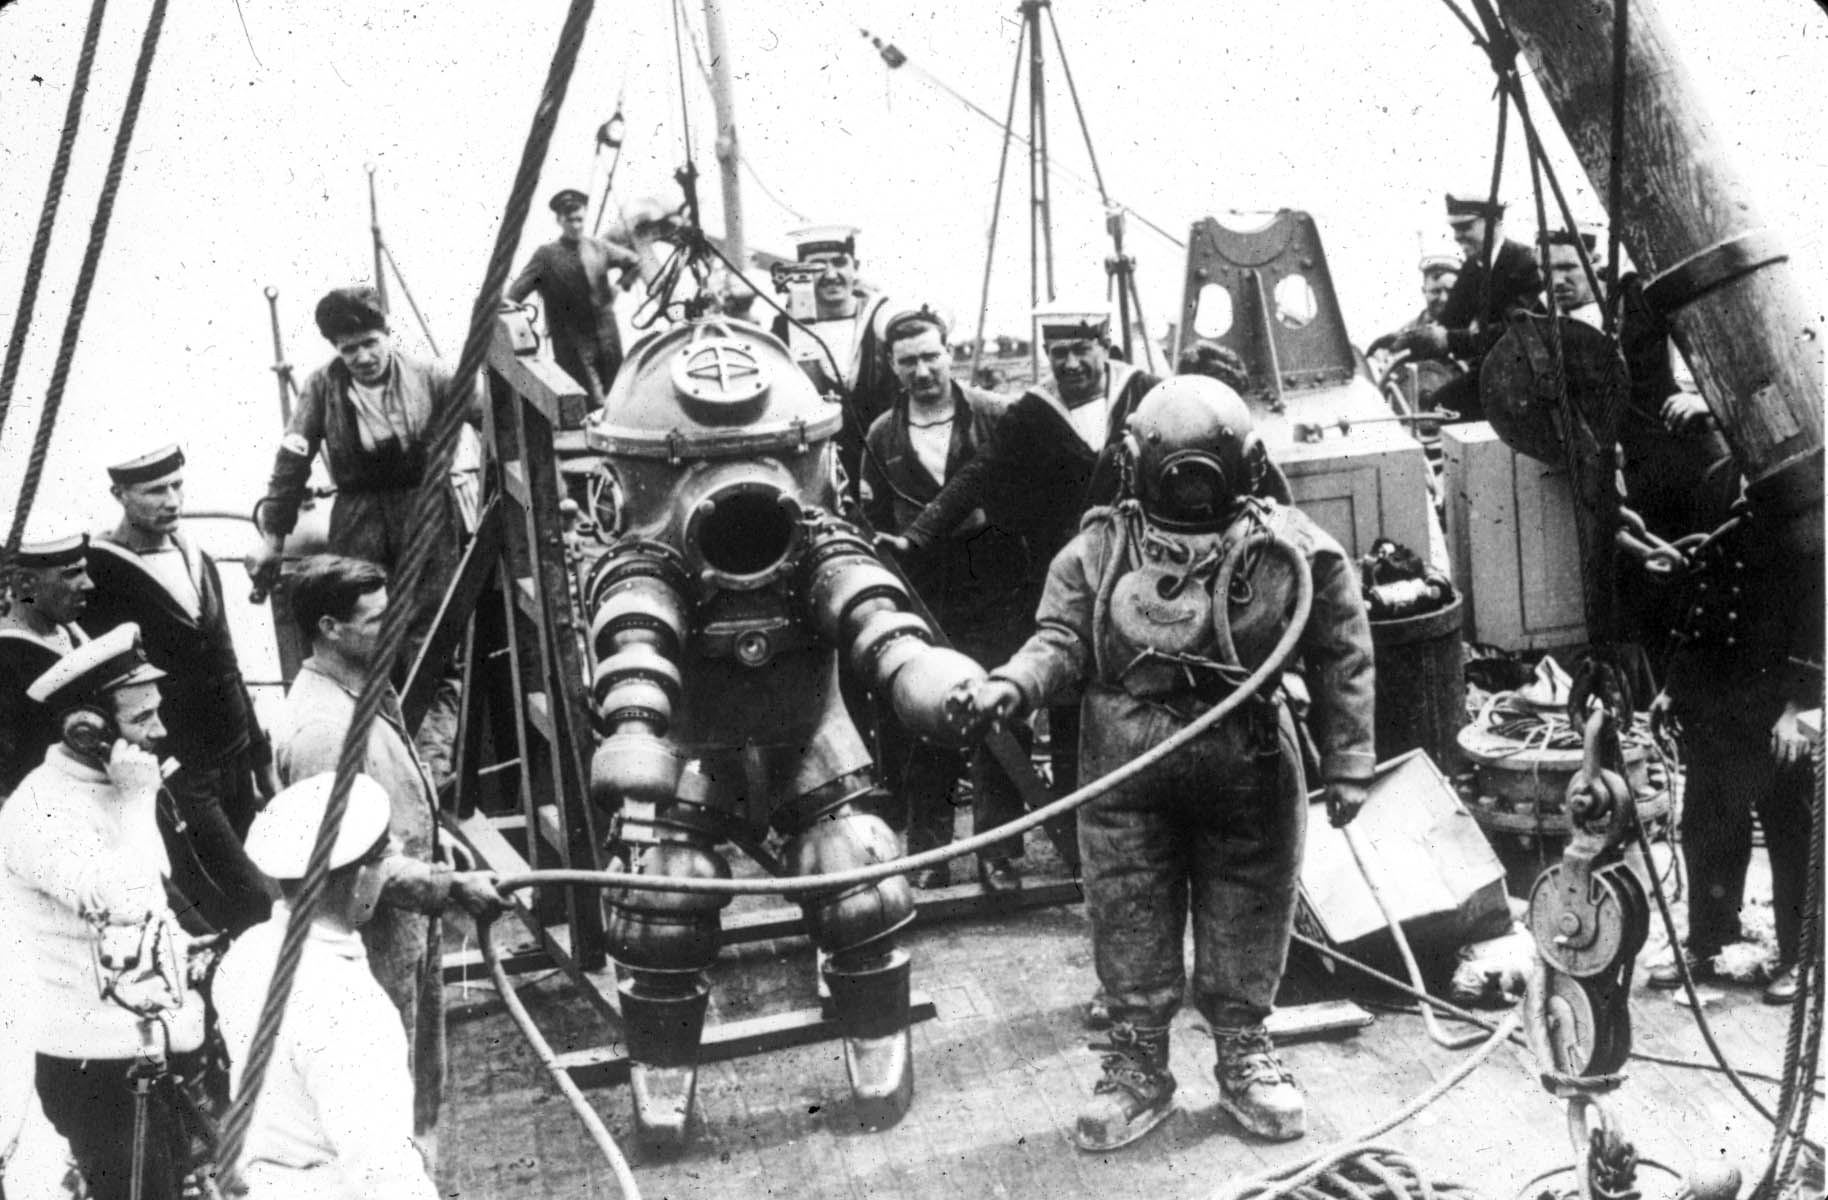 Retro diving suit